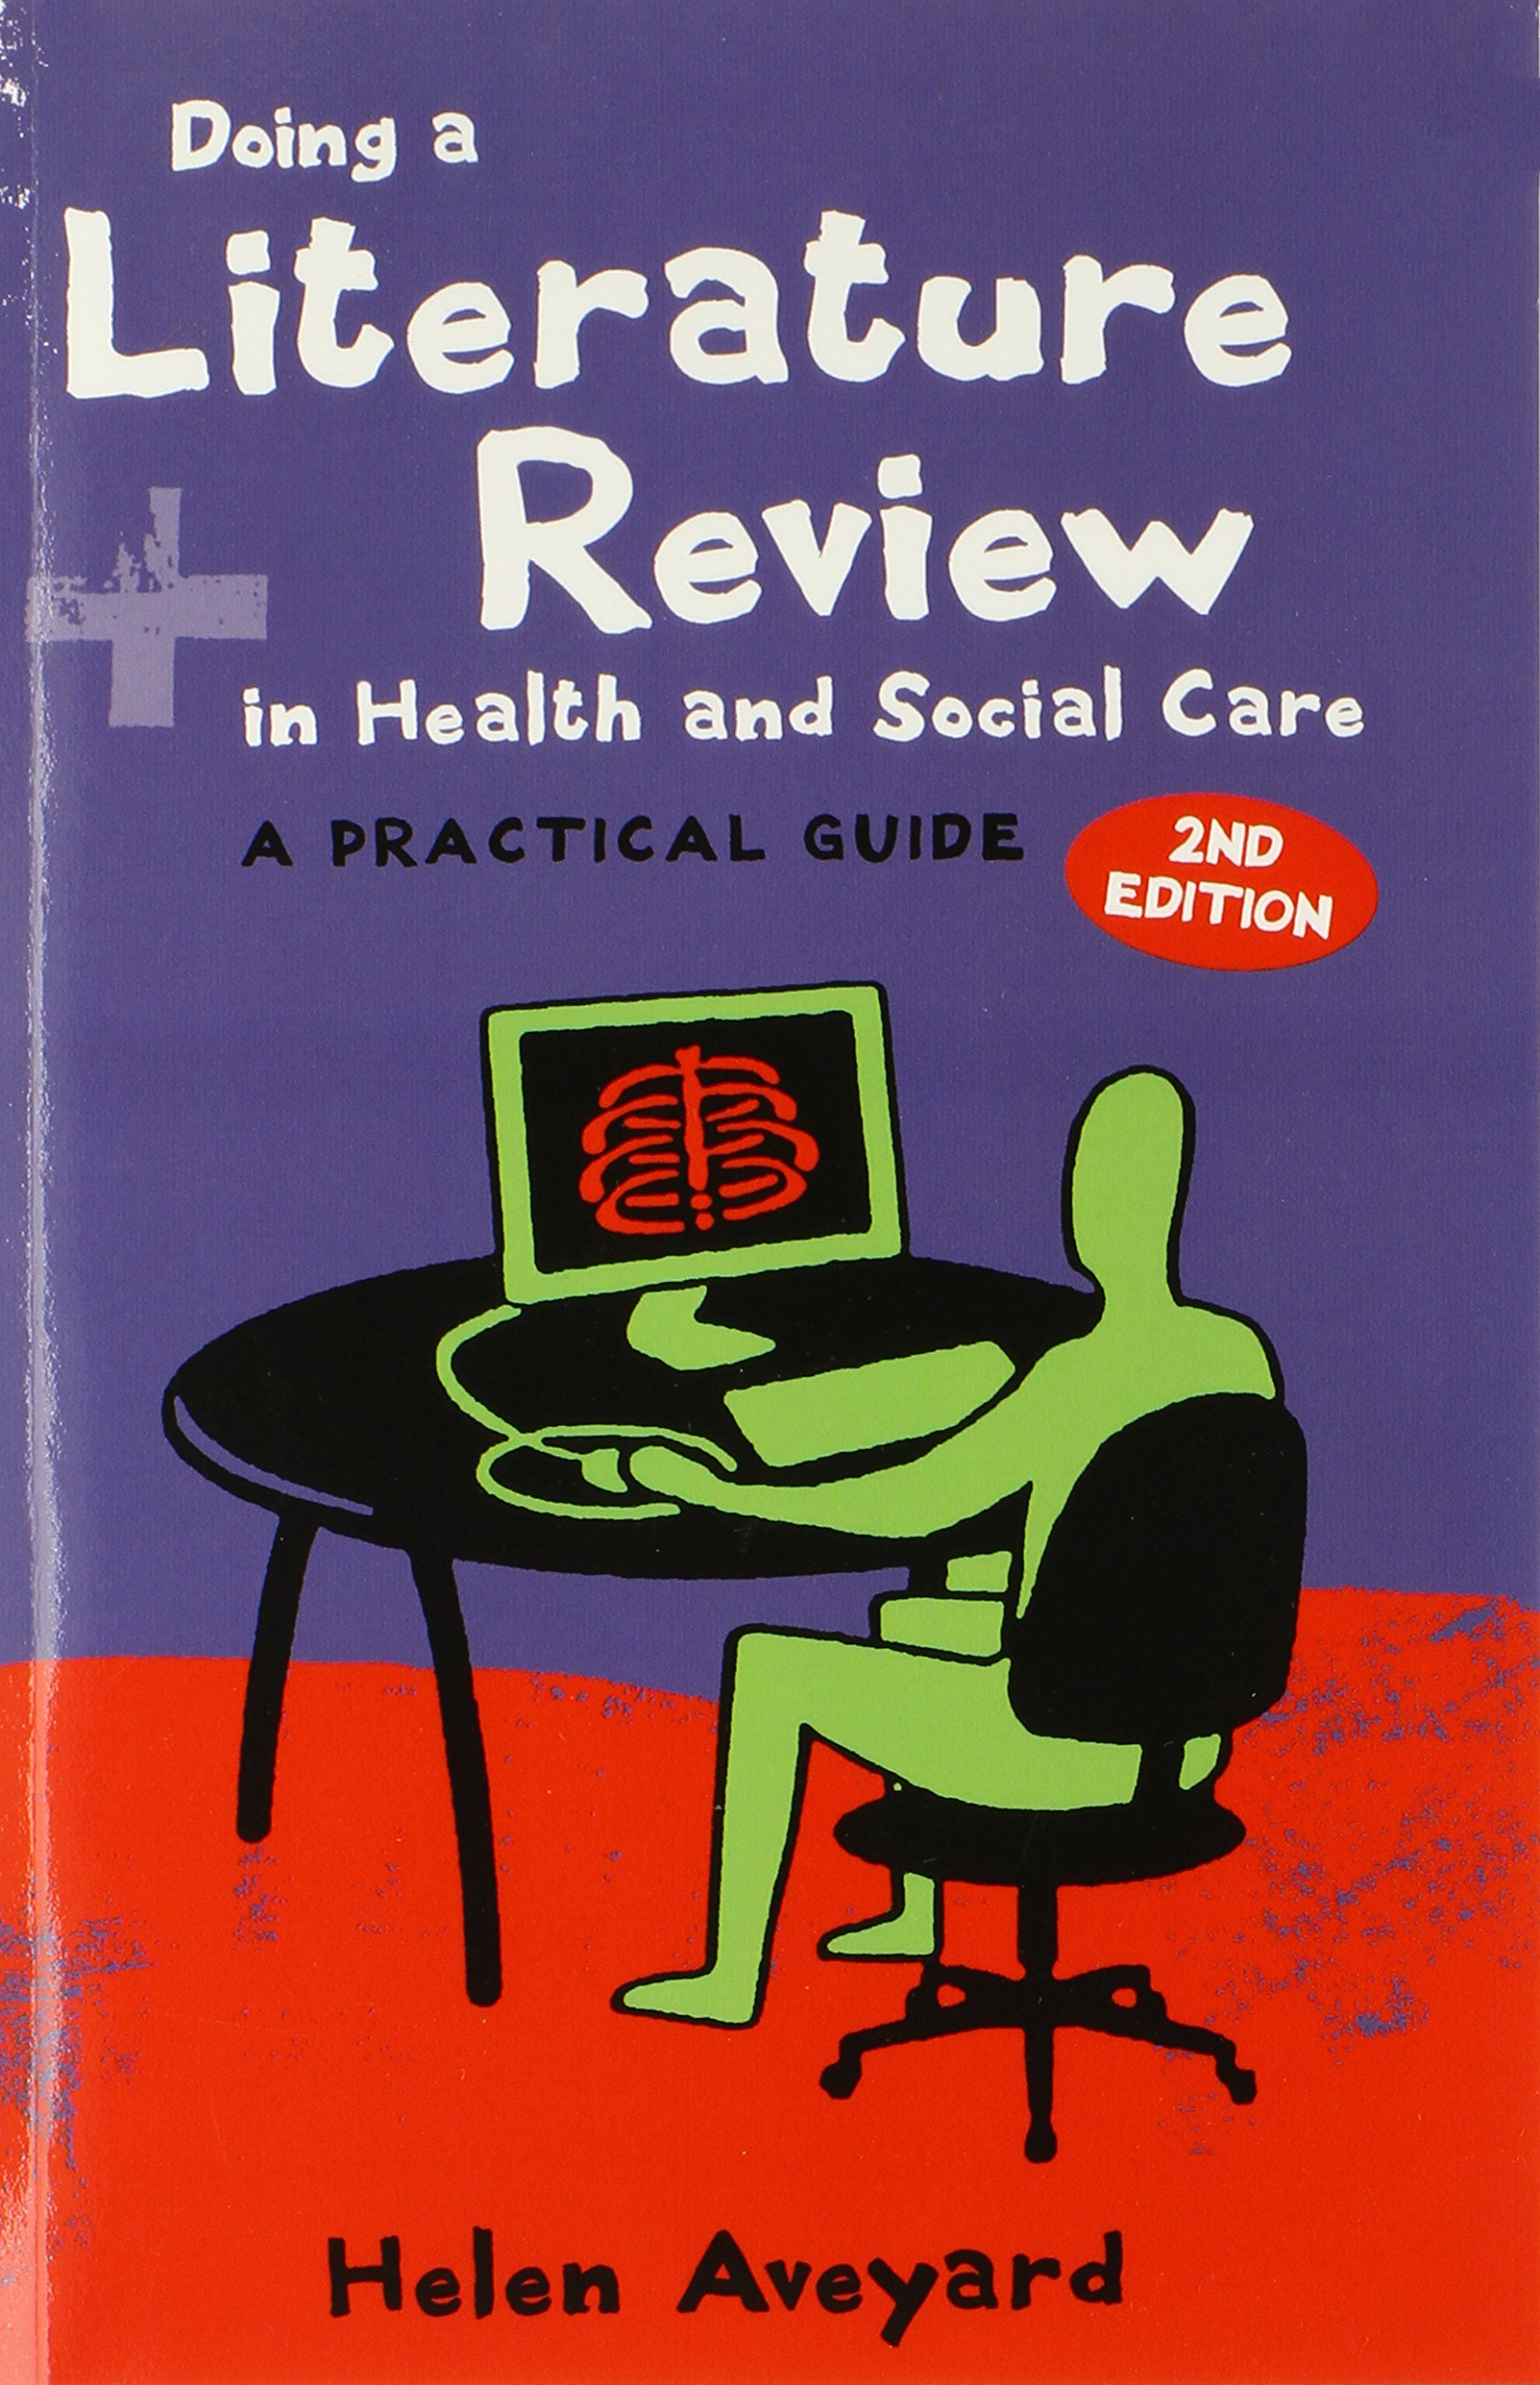 helen aveyard 2010 literature review